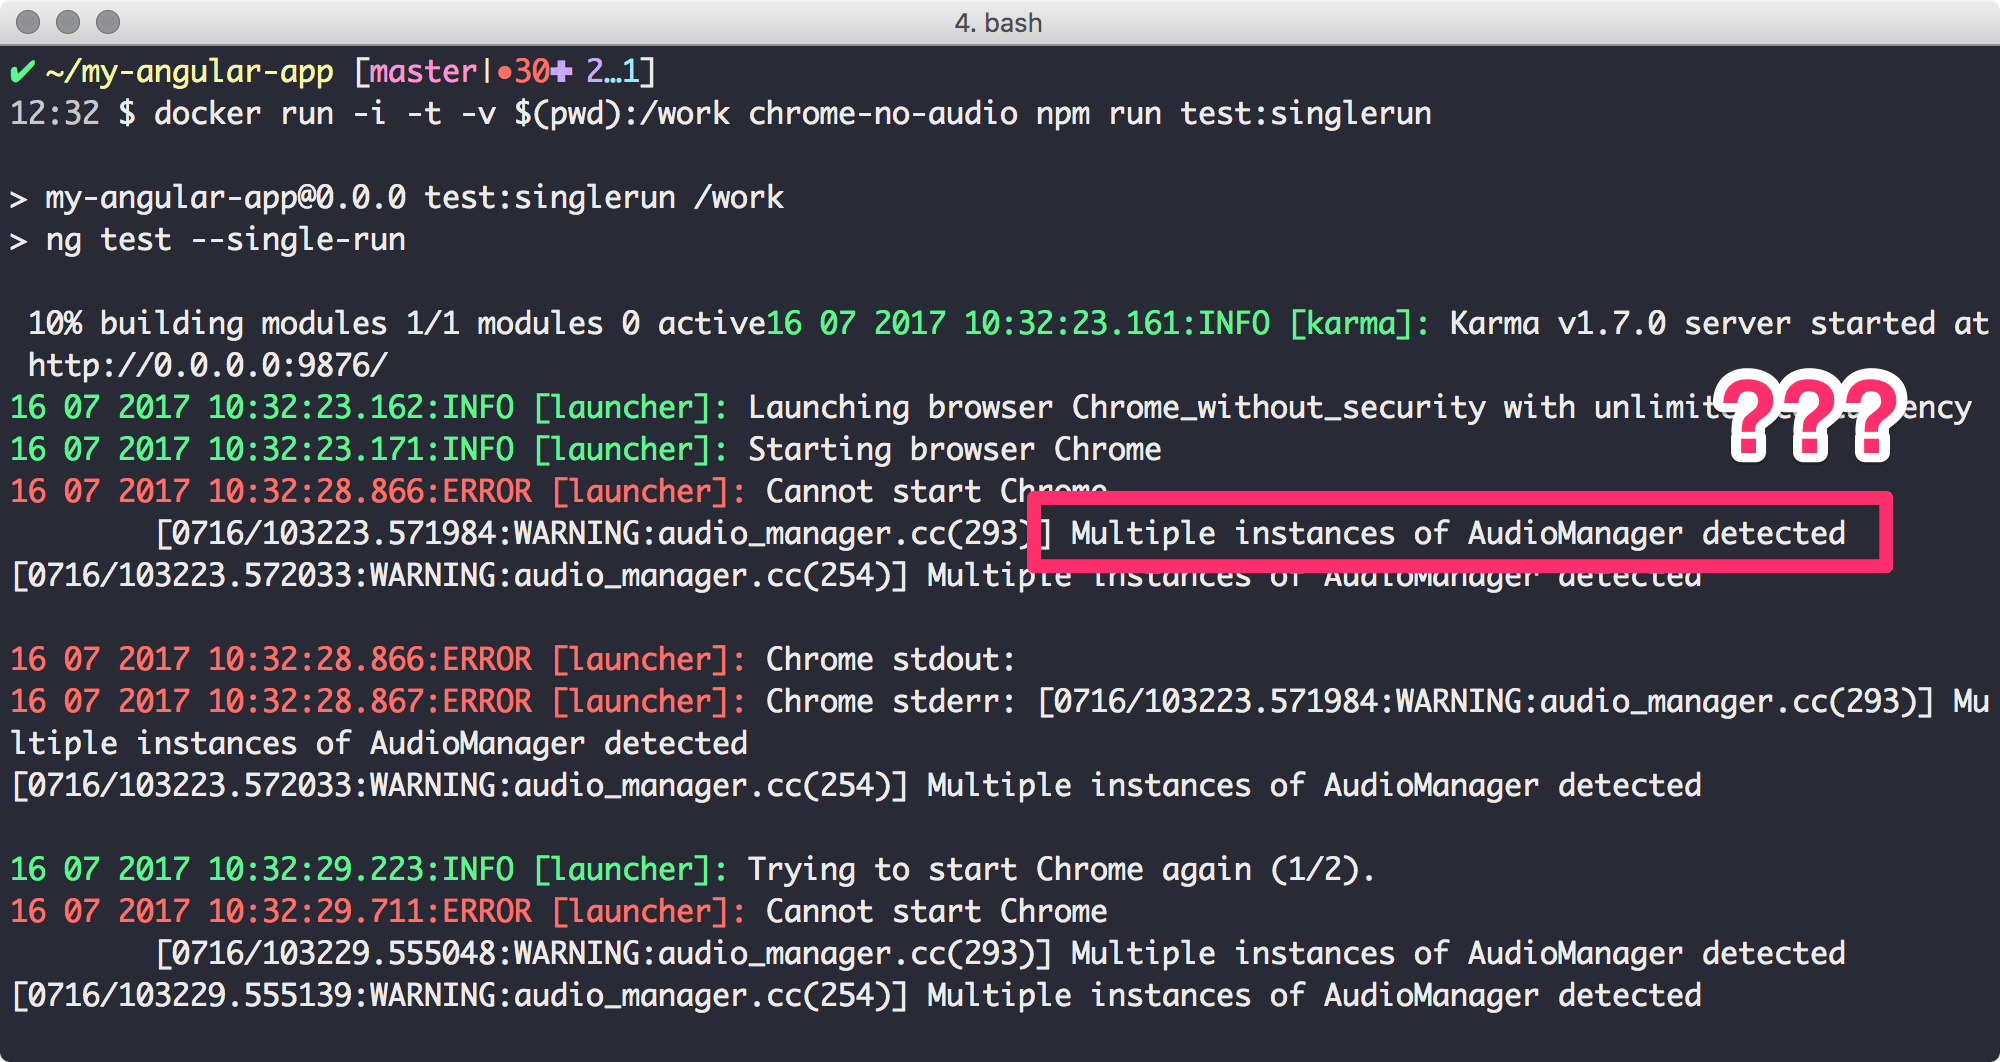 Multiple instances of AudioManager detected - Fehler